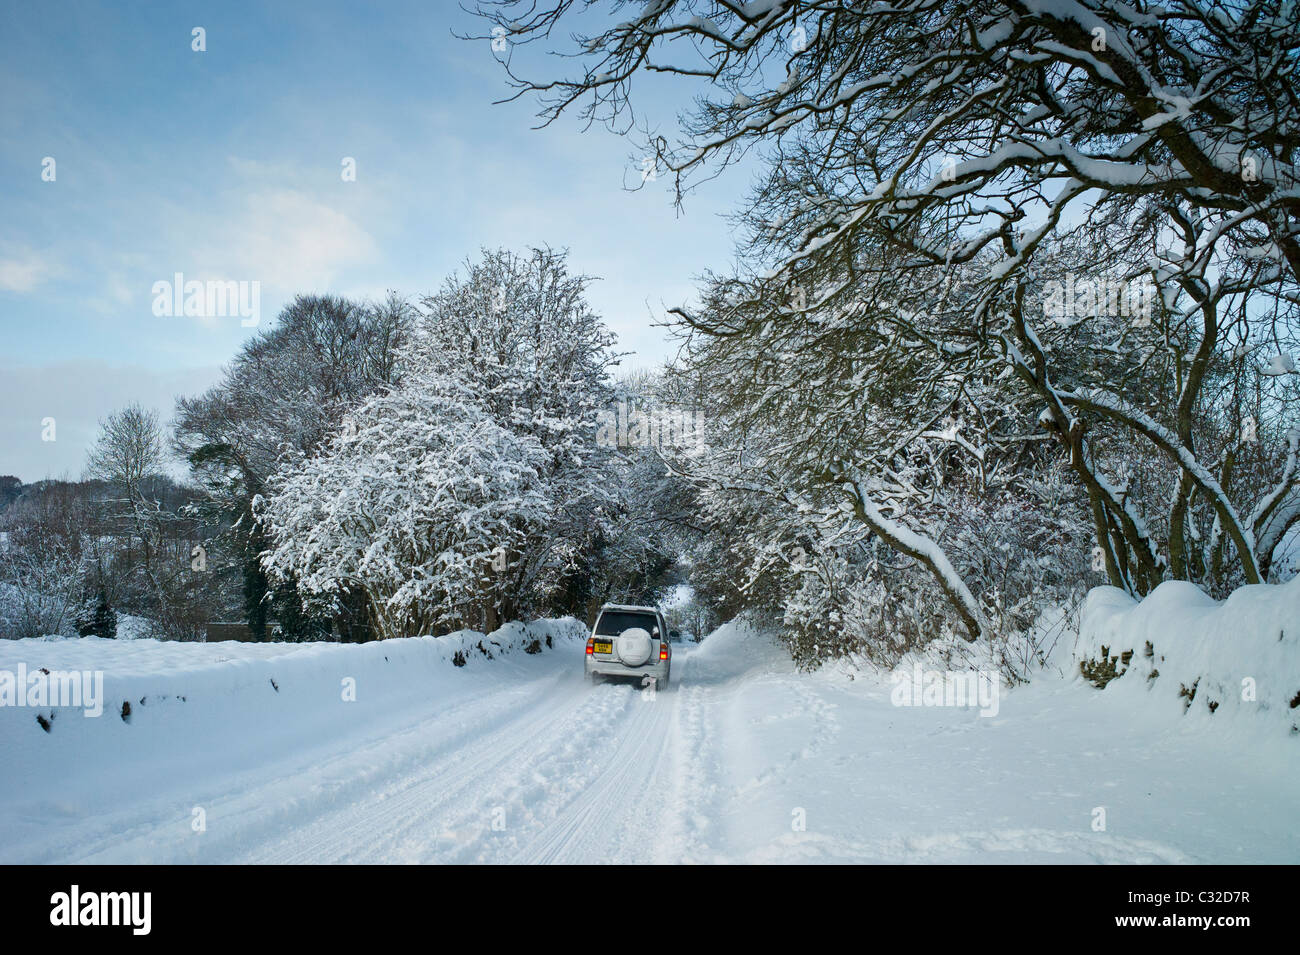 Four wheel drive vehicle in snow-covered lane in Swinbrook, The Cotswolds, UK - Stock Image